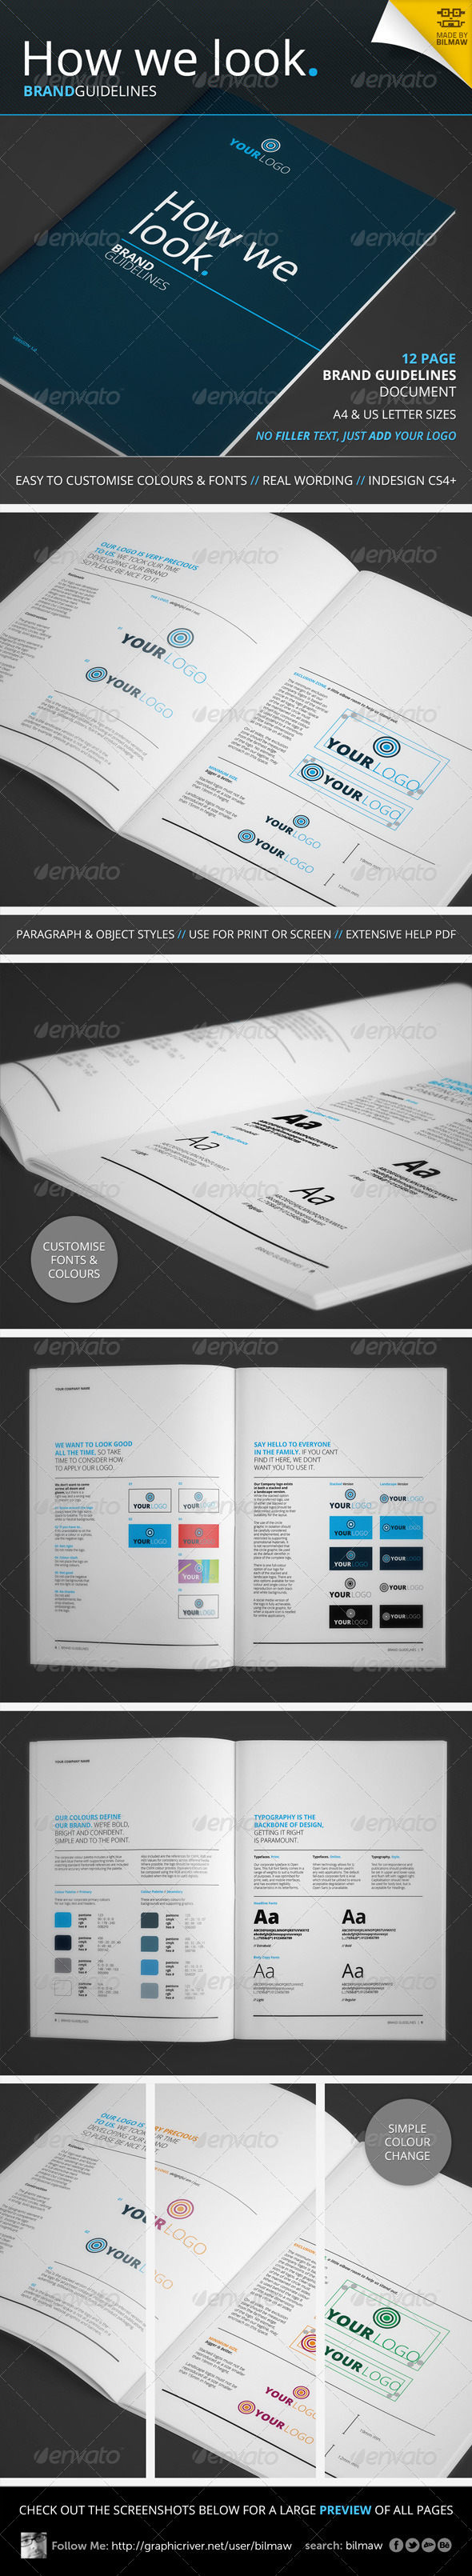 How We Look Brand Guidelines